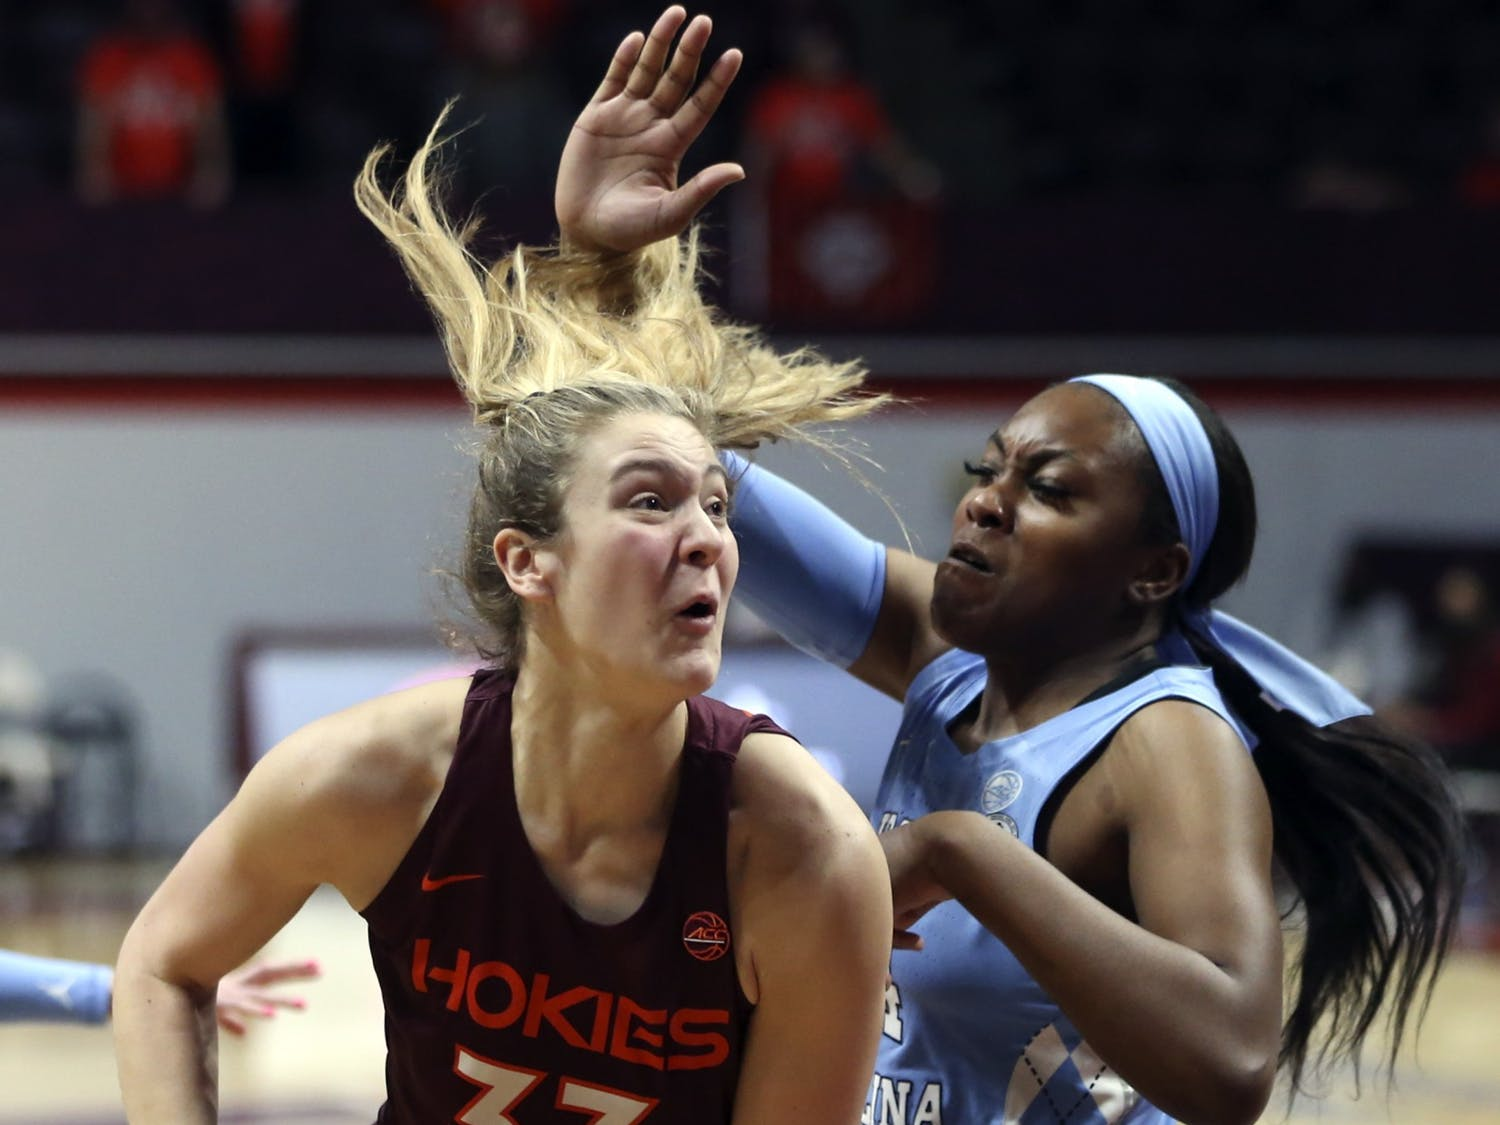 Virginia Tech's Elizabeth Kitley (33), drives on North Carolina's Janelle Bailey (44) during the first half of an NCAA college basketball game in Blacksburg Va. Sunday February 28 2021. Photo courtesy of Matt Gentry/AP Photo/The Roanoke Times